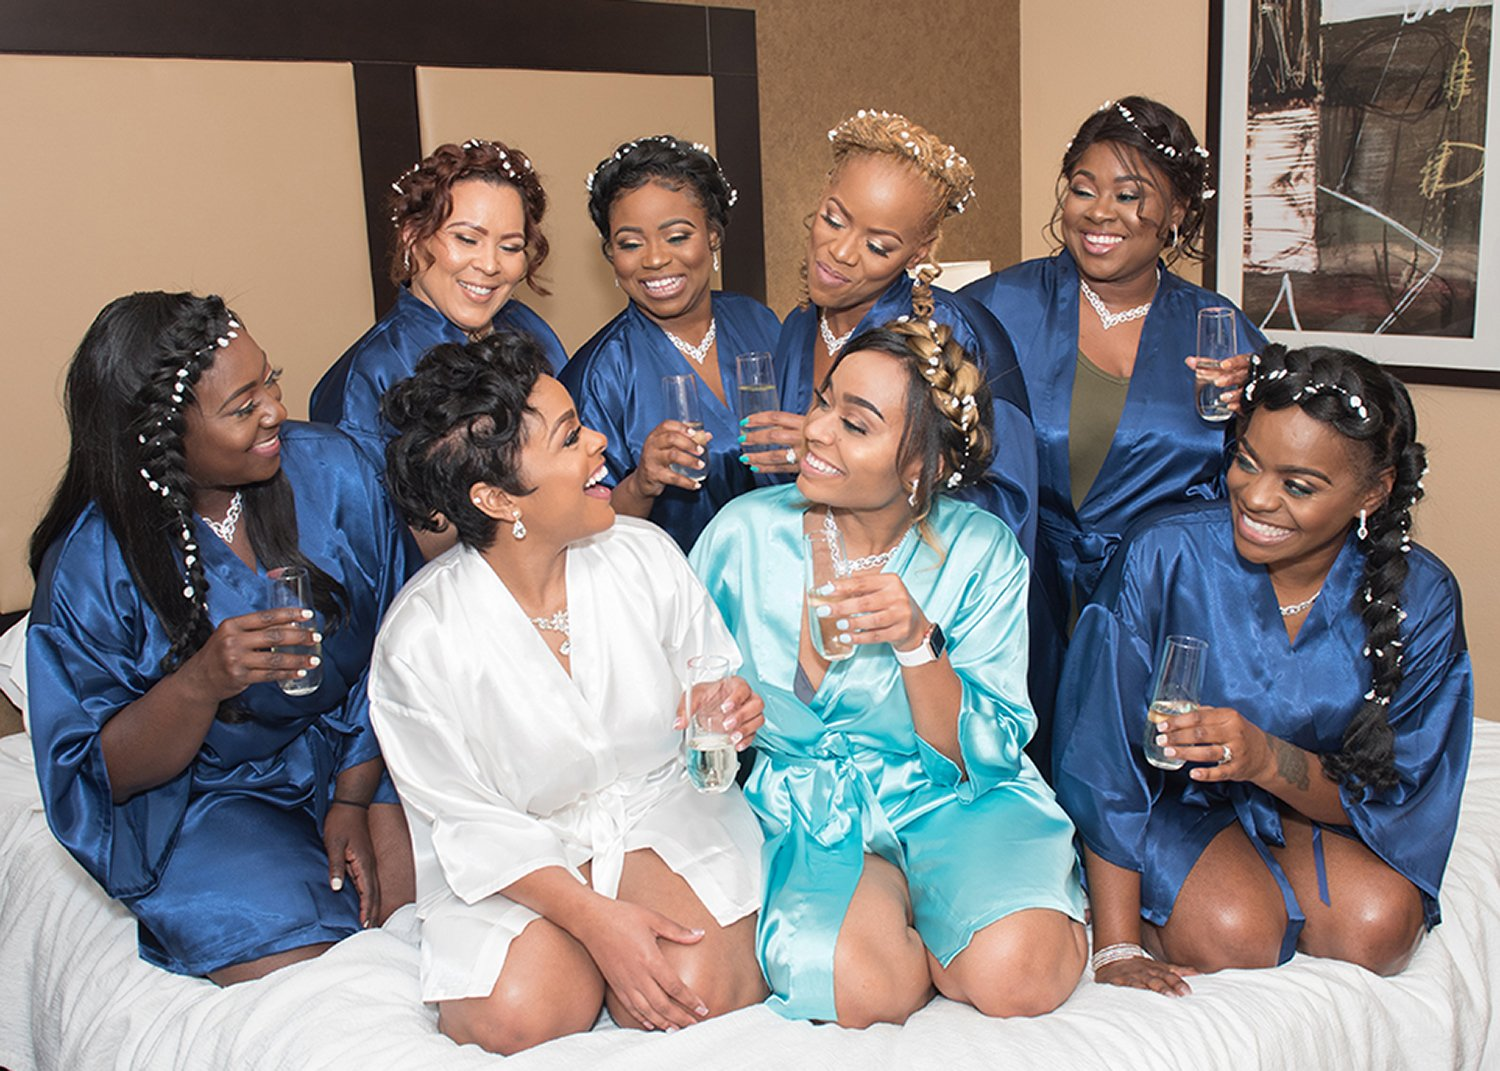 bridal party wearing robes laughing